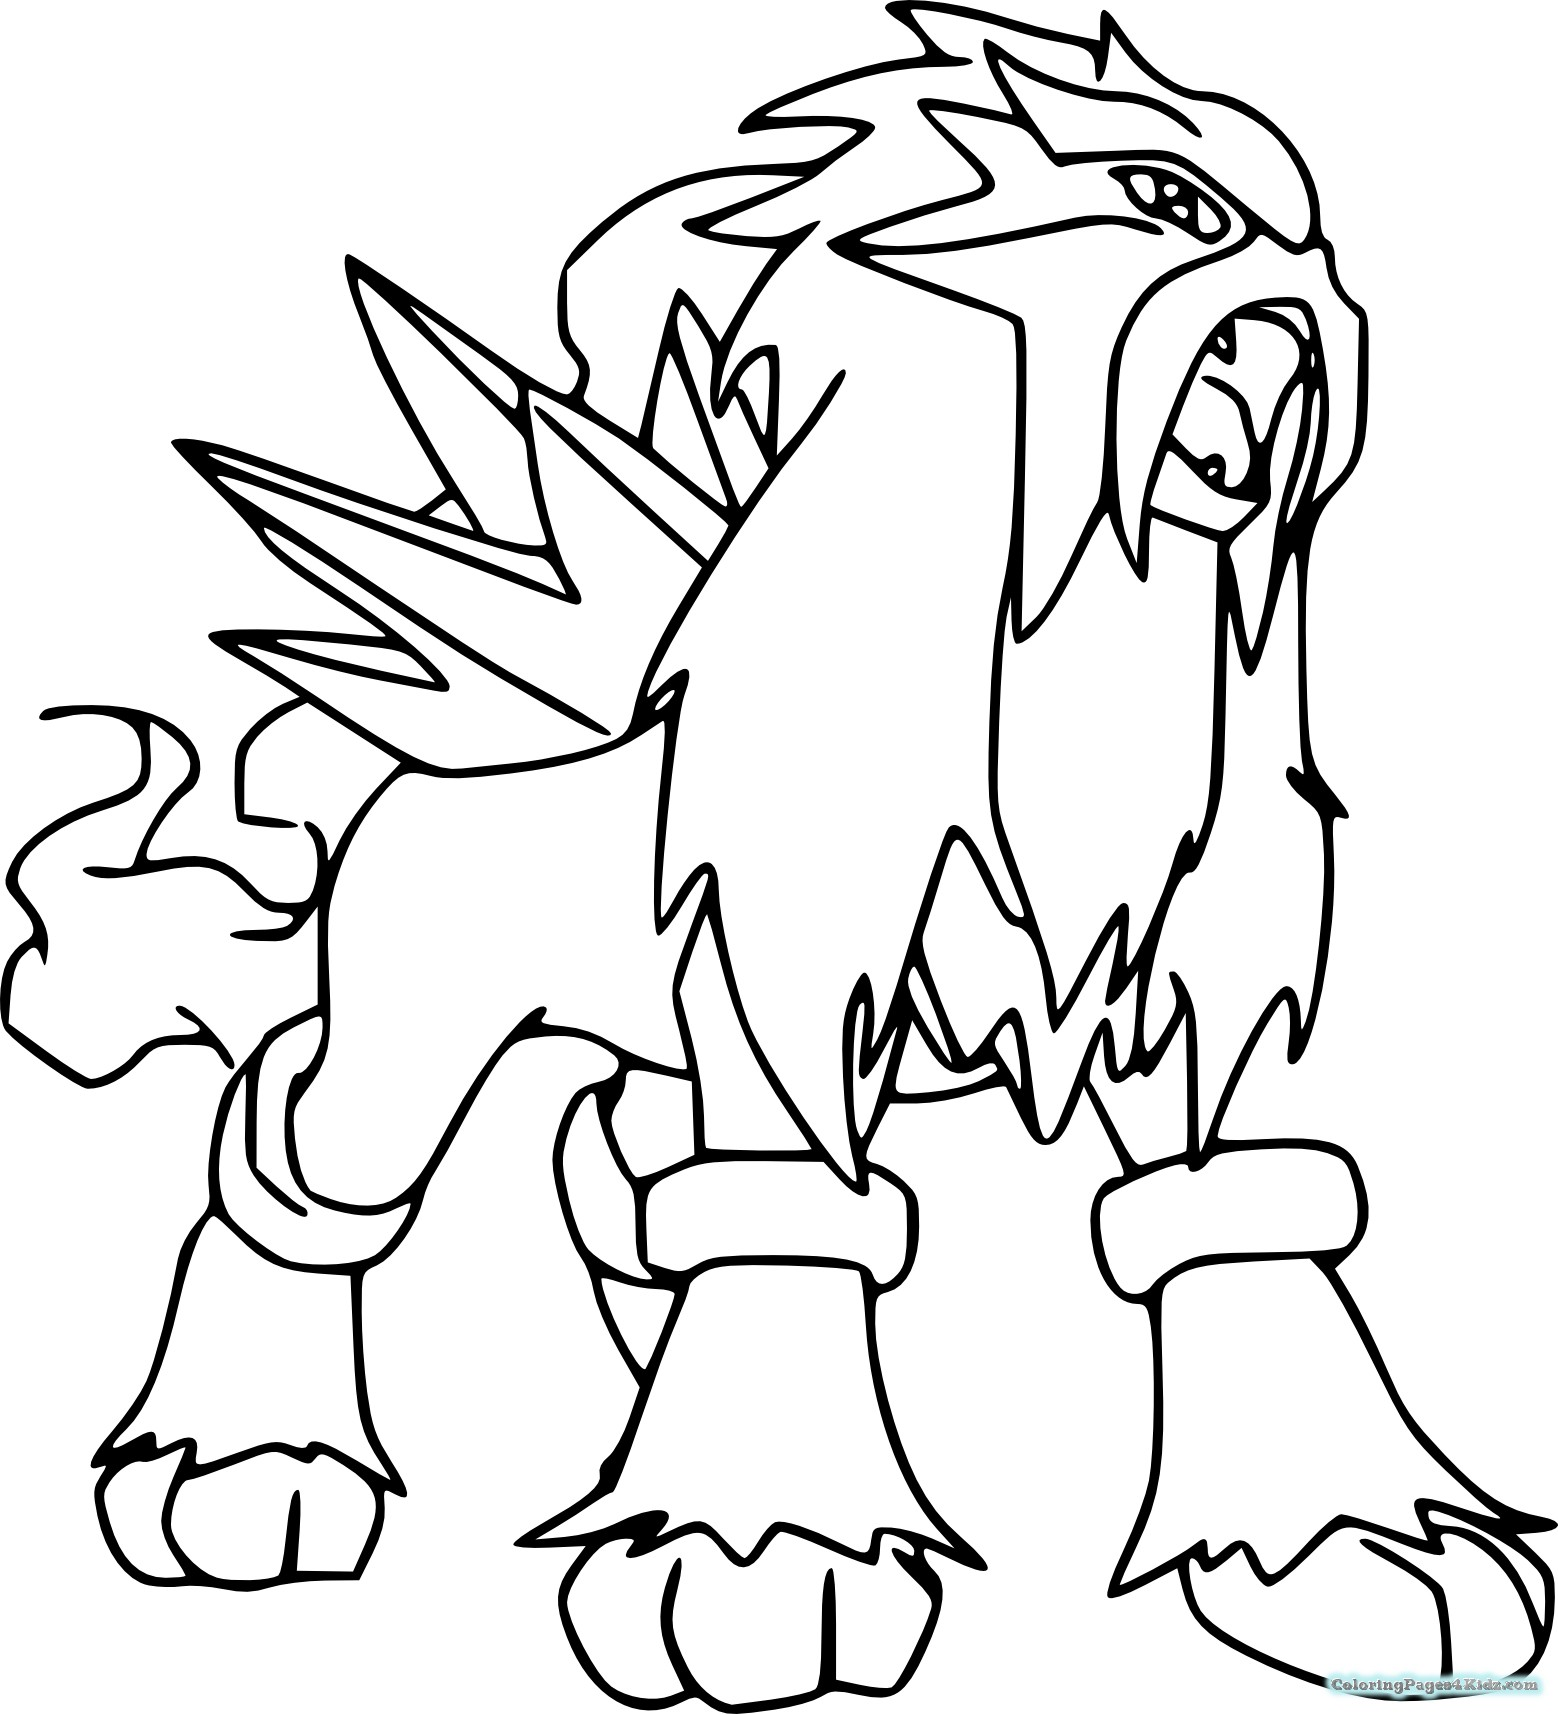 free pokemon printable coloring pages all pokemon coloring pages free printable all pokemon pokemon free printable coloring pages